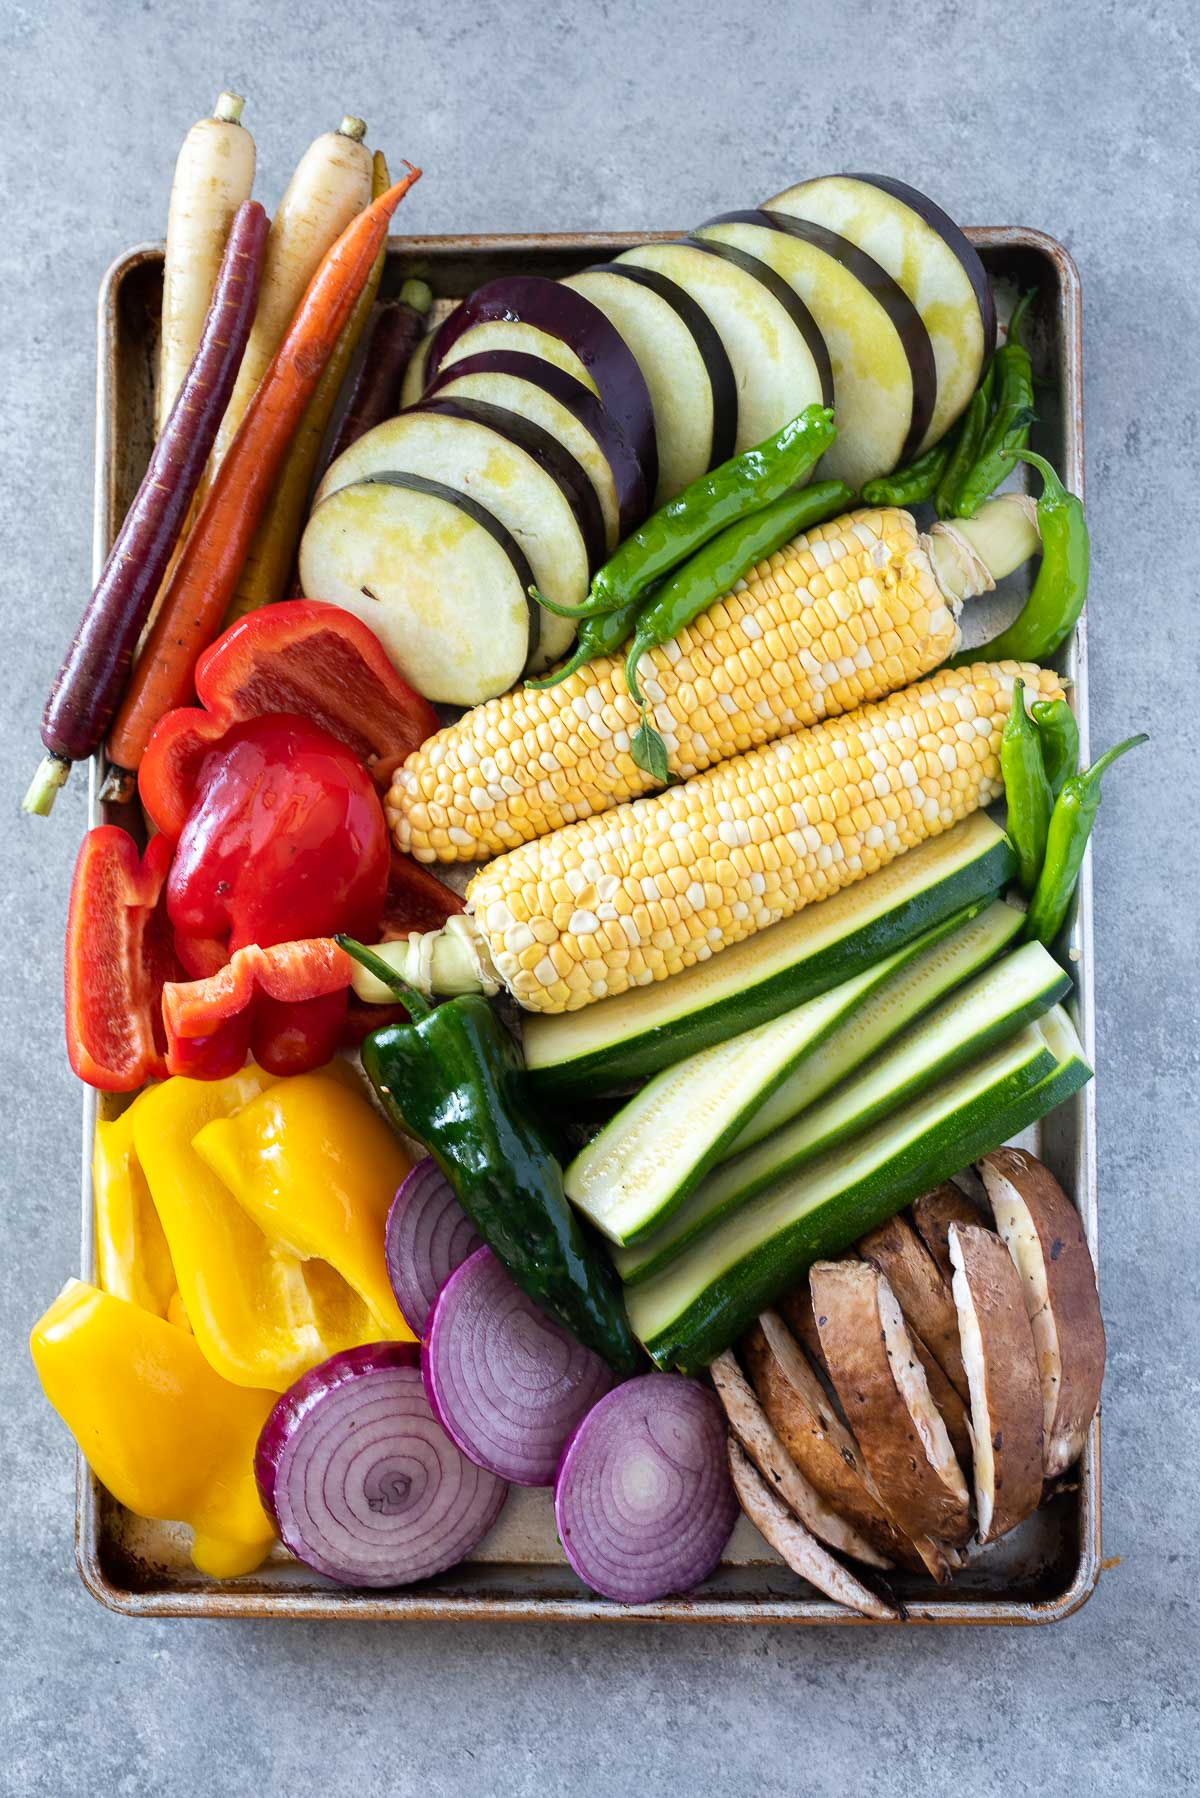 baking sheet with assorted vegetables for grilling